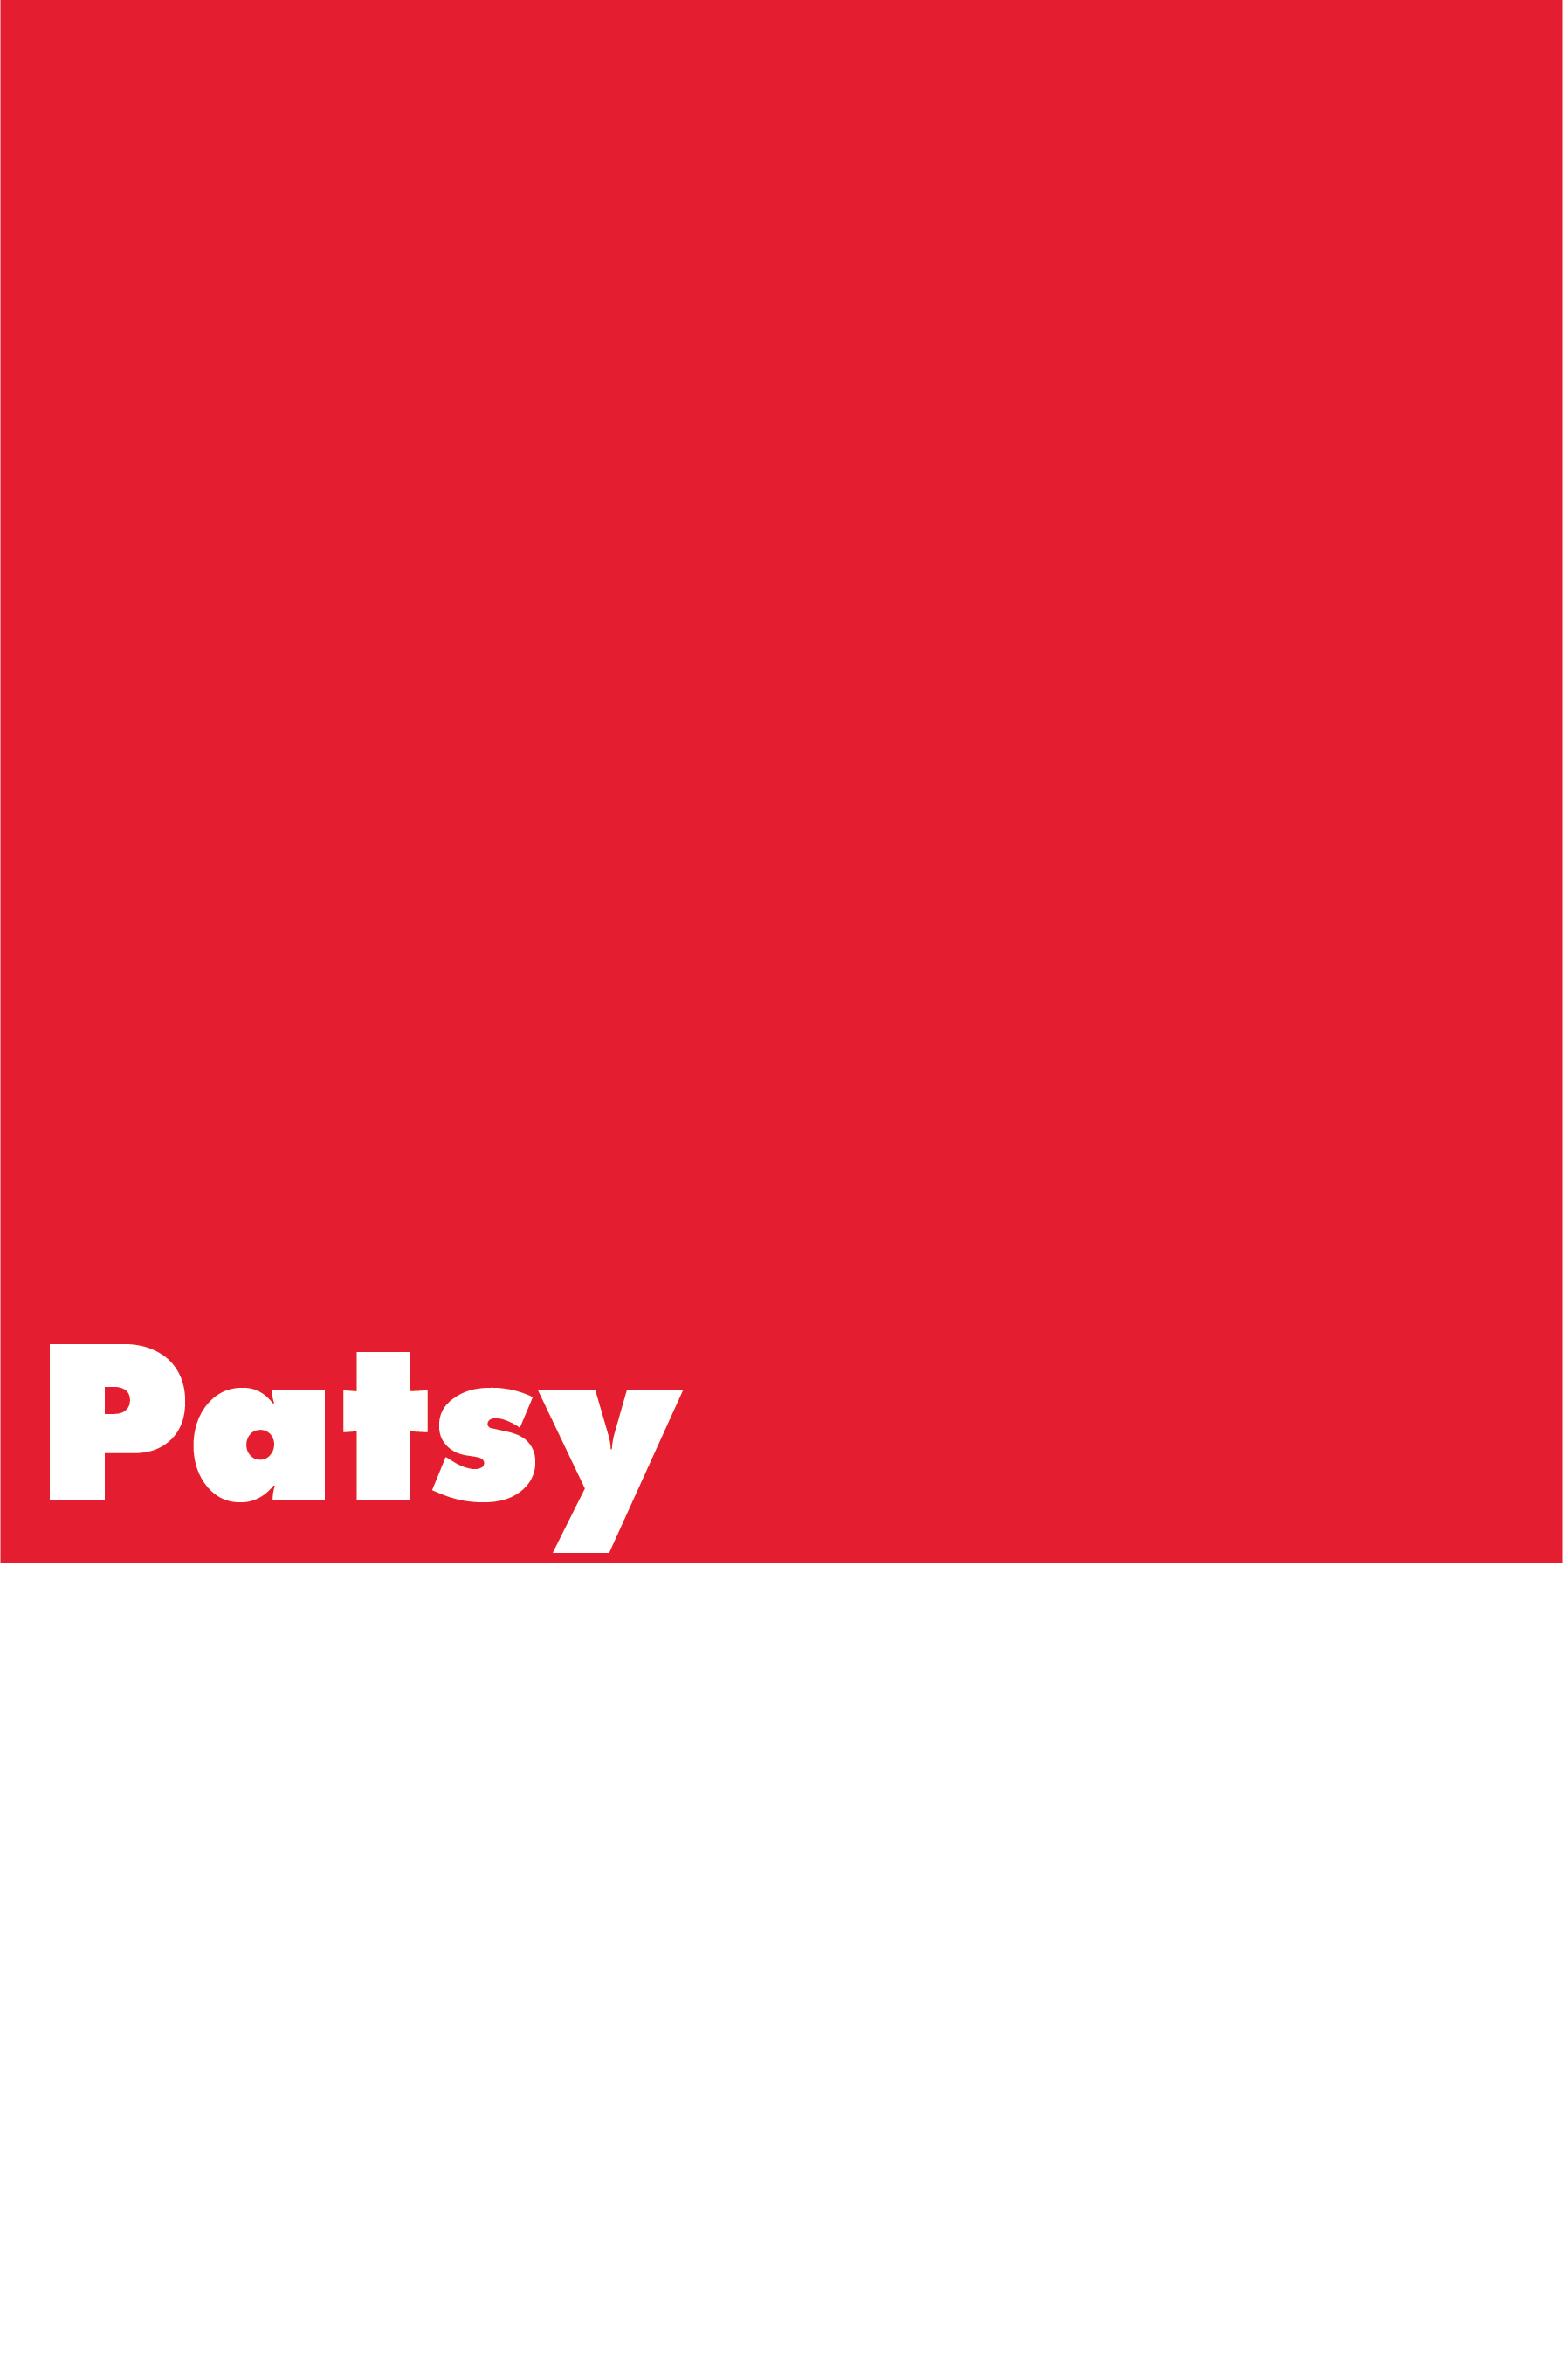 Patsy Collins  s   Anna Slaughter  is MODA's Development and Membership Associate. She _______, loves _________, and has _________. Lorem ipsum lorem ipsum lorep ipsum lorem ipsum lorem ipsum lorem ipsum lorem ipsum lorem ipsum lorem ipsum.  dfsdfsdfsdf